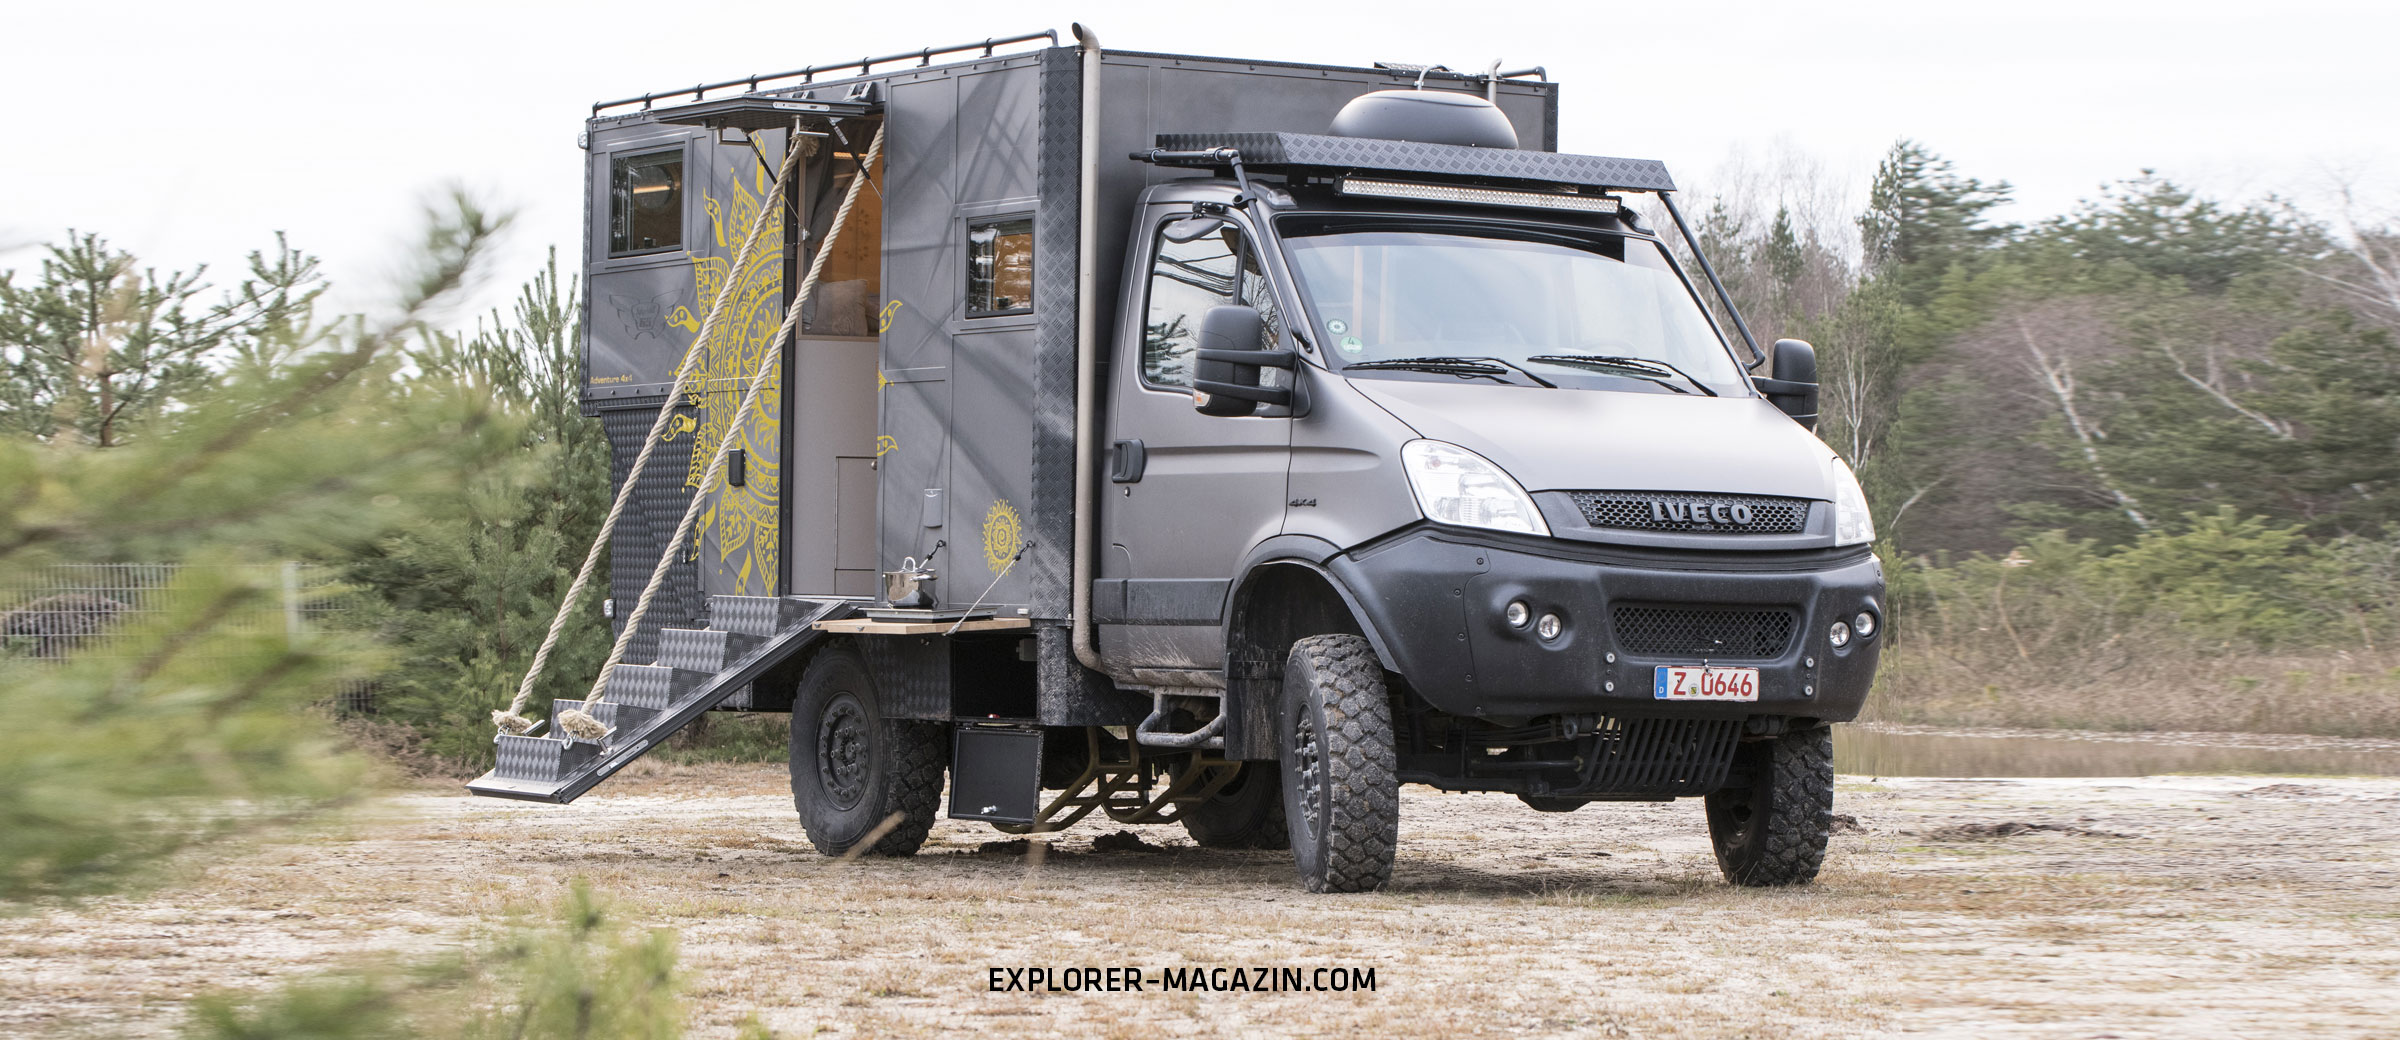 Die Offroad-Harley - Iveco Daily 10x10 in Mad-Max Optik  EXPLORER